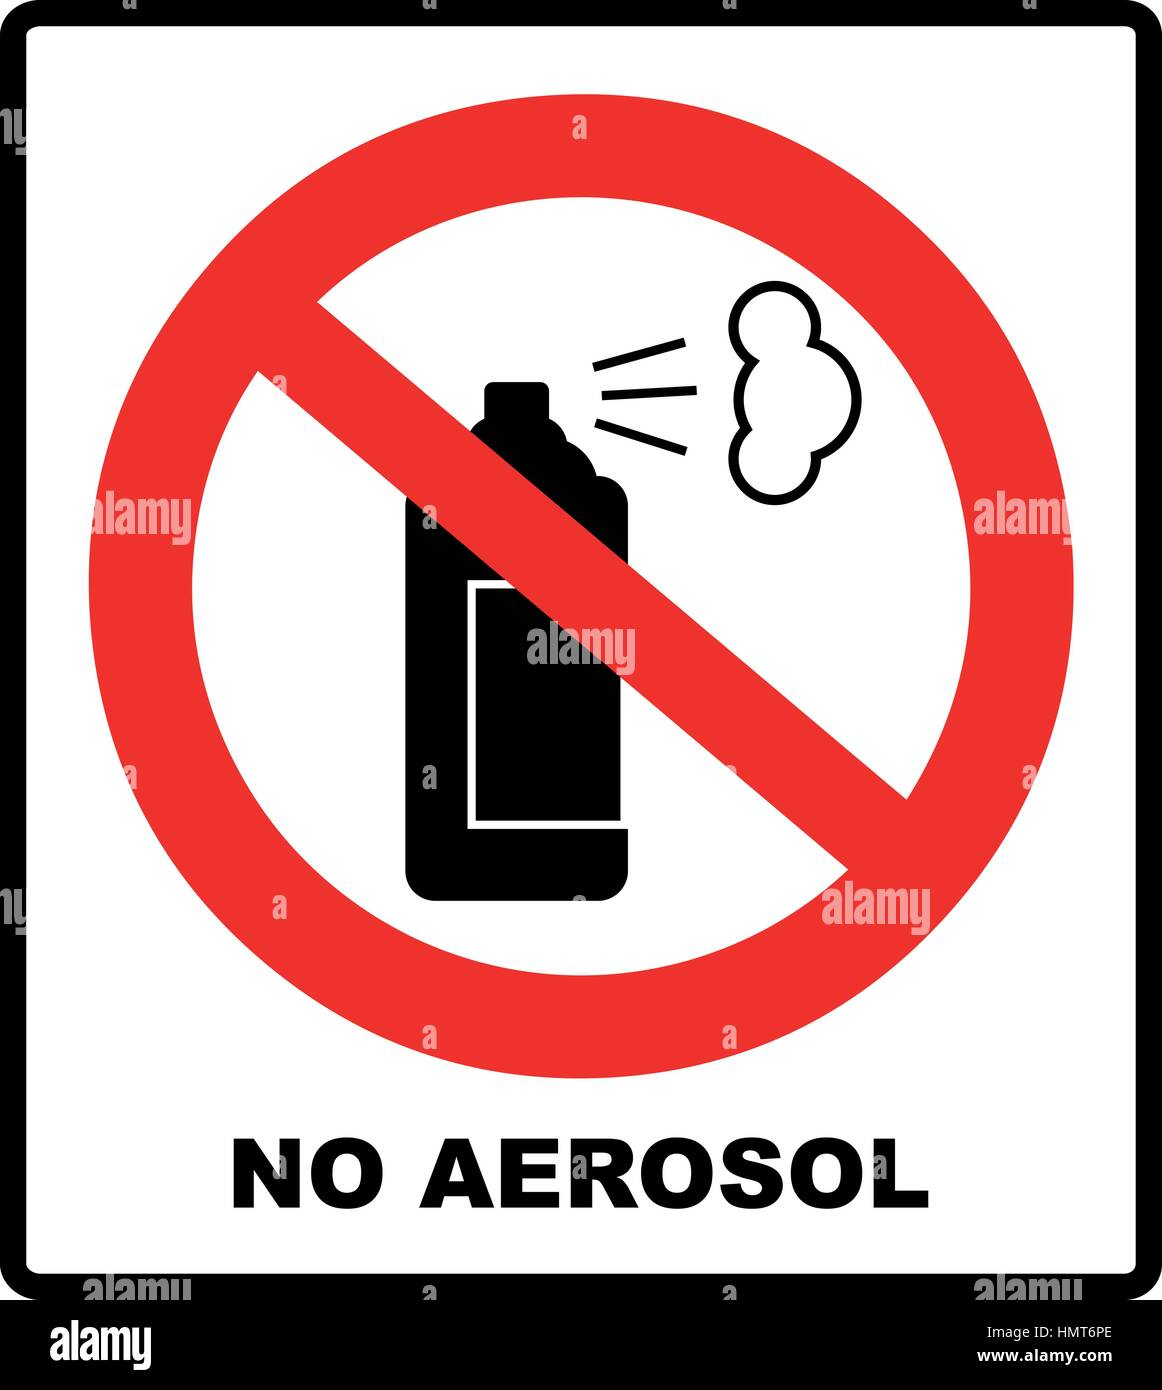 No aerosol spray sign, No alcohol sign vector illustration, red prohibition circle, for wall, buildings, public - Stock Vector